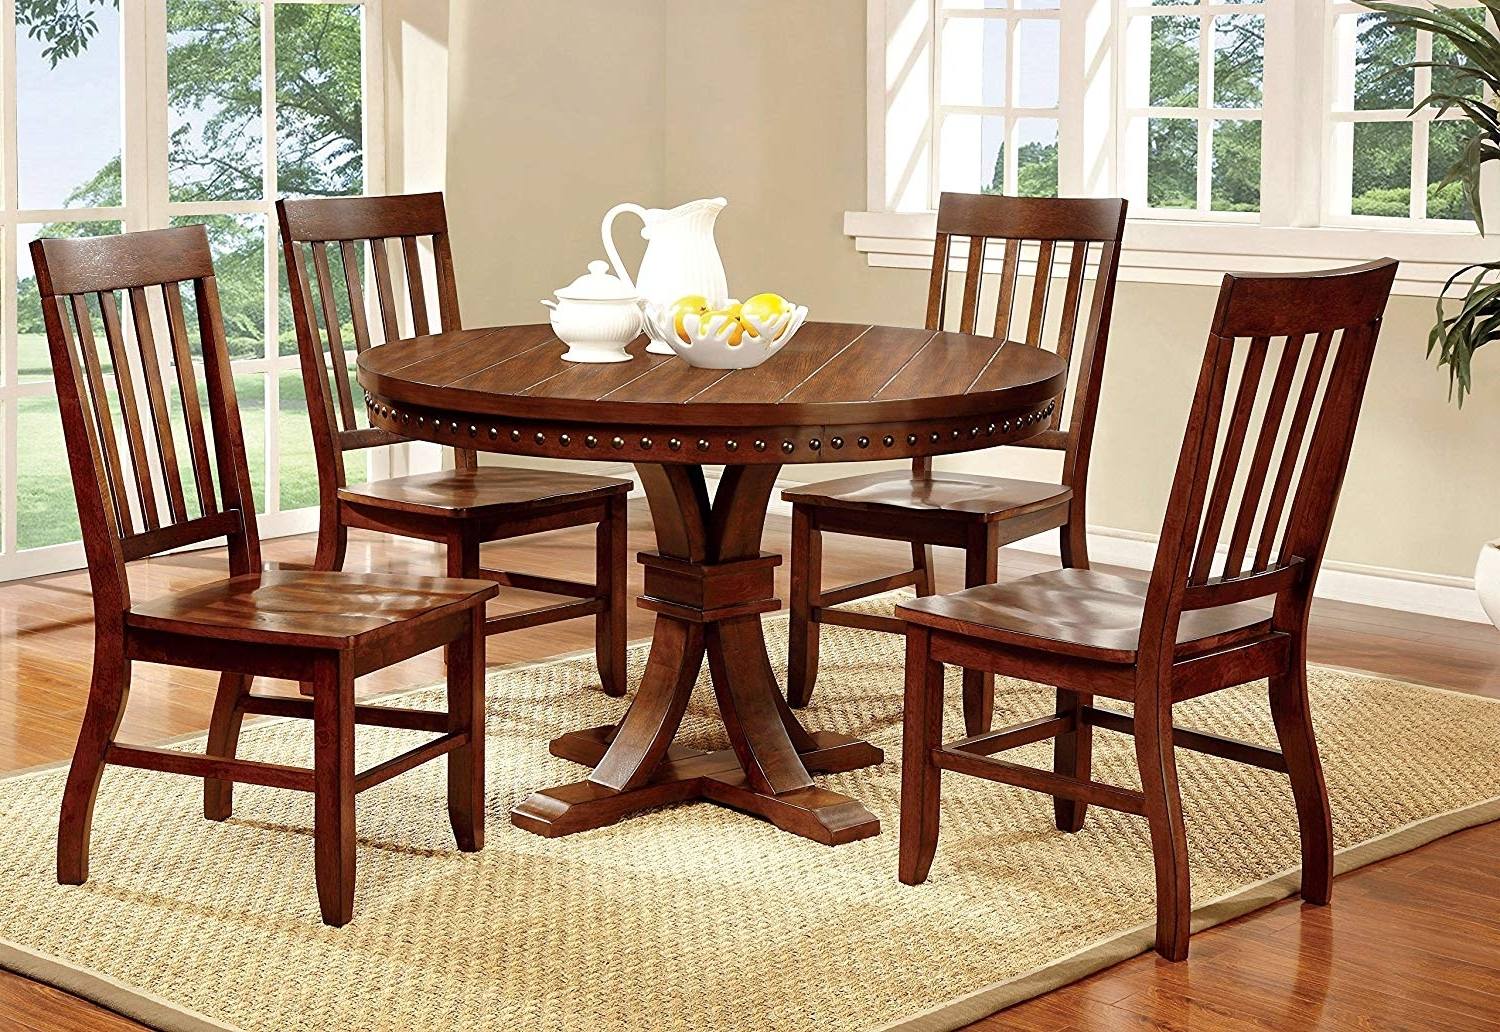 Amazon – Furniture Of America Castile 5 Piece Transitional Round Regarding Fashionable Dining Table Chair Sets (Gallery 4 of 25)